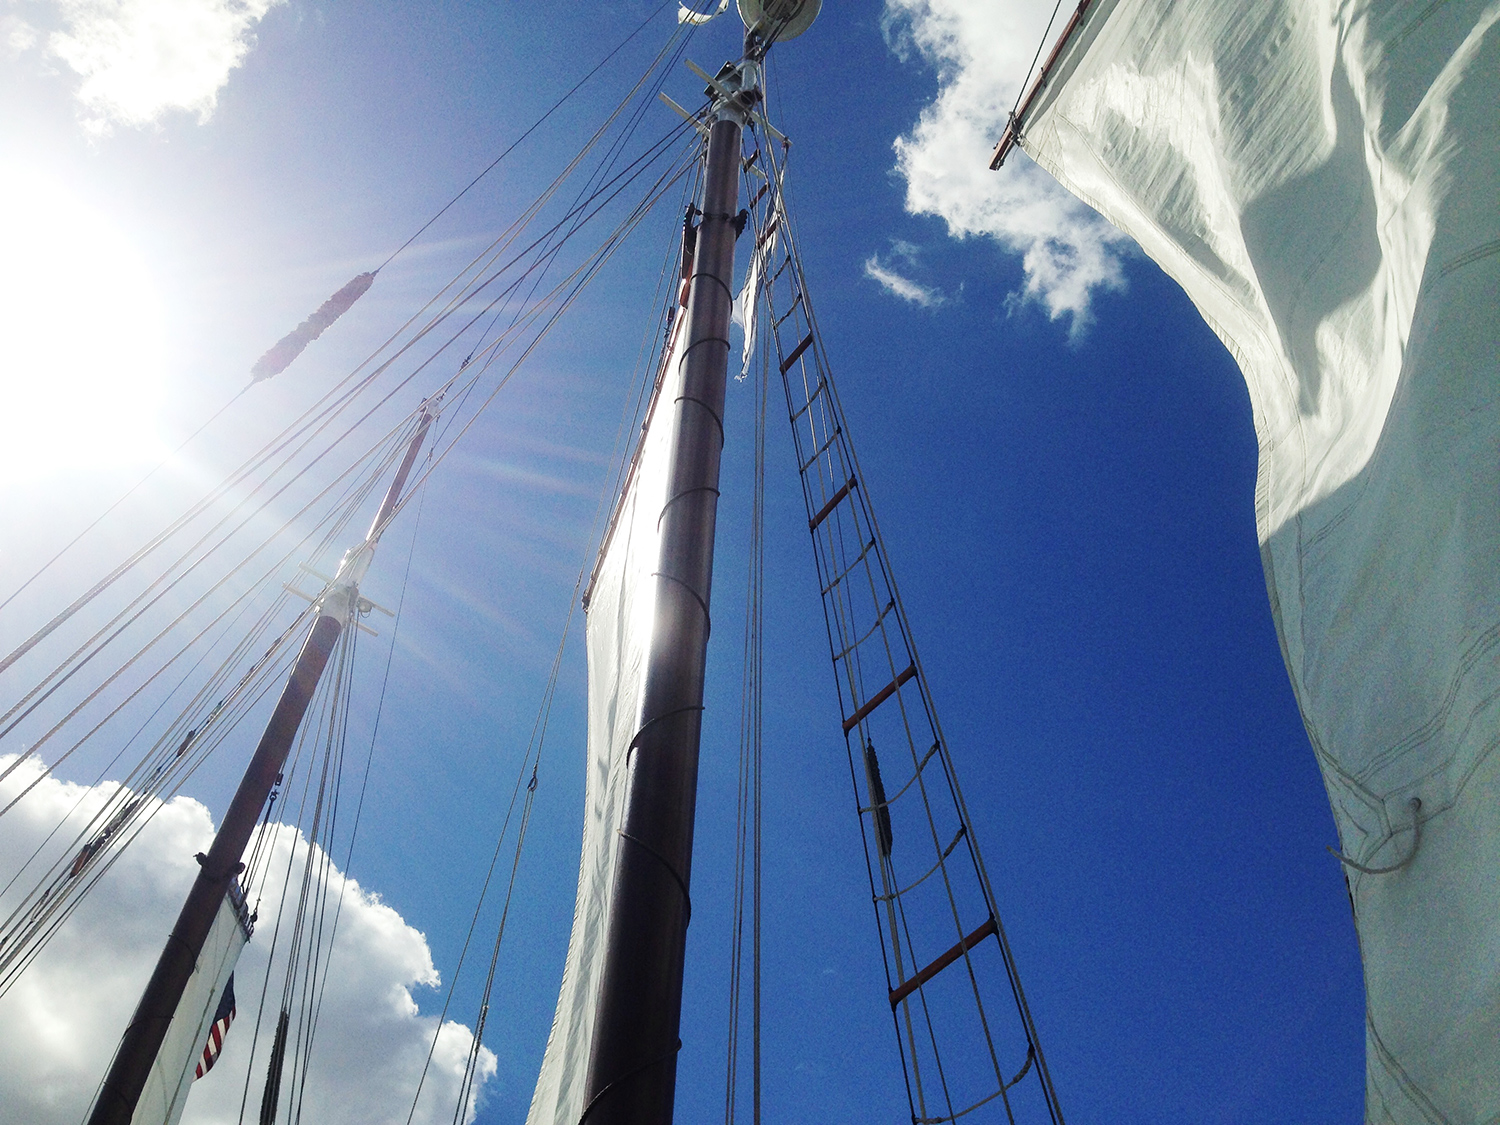 Sun on the masts.